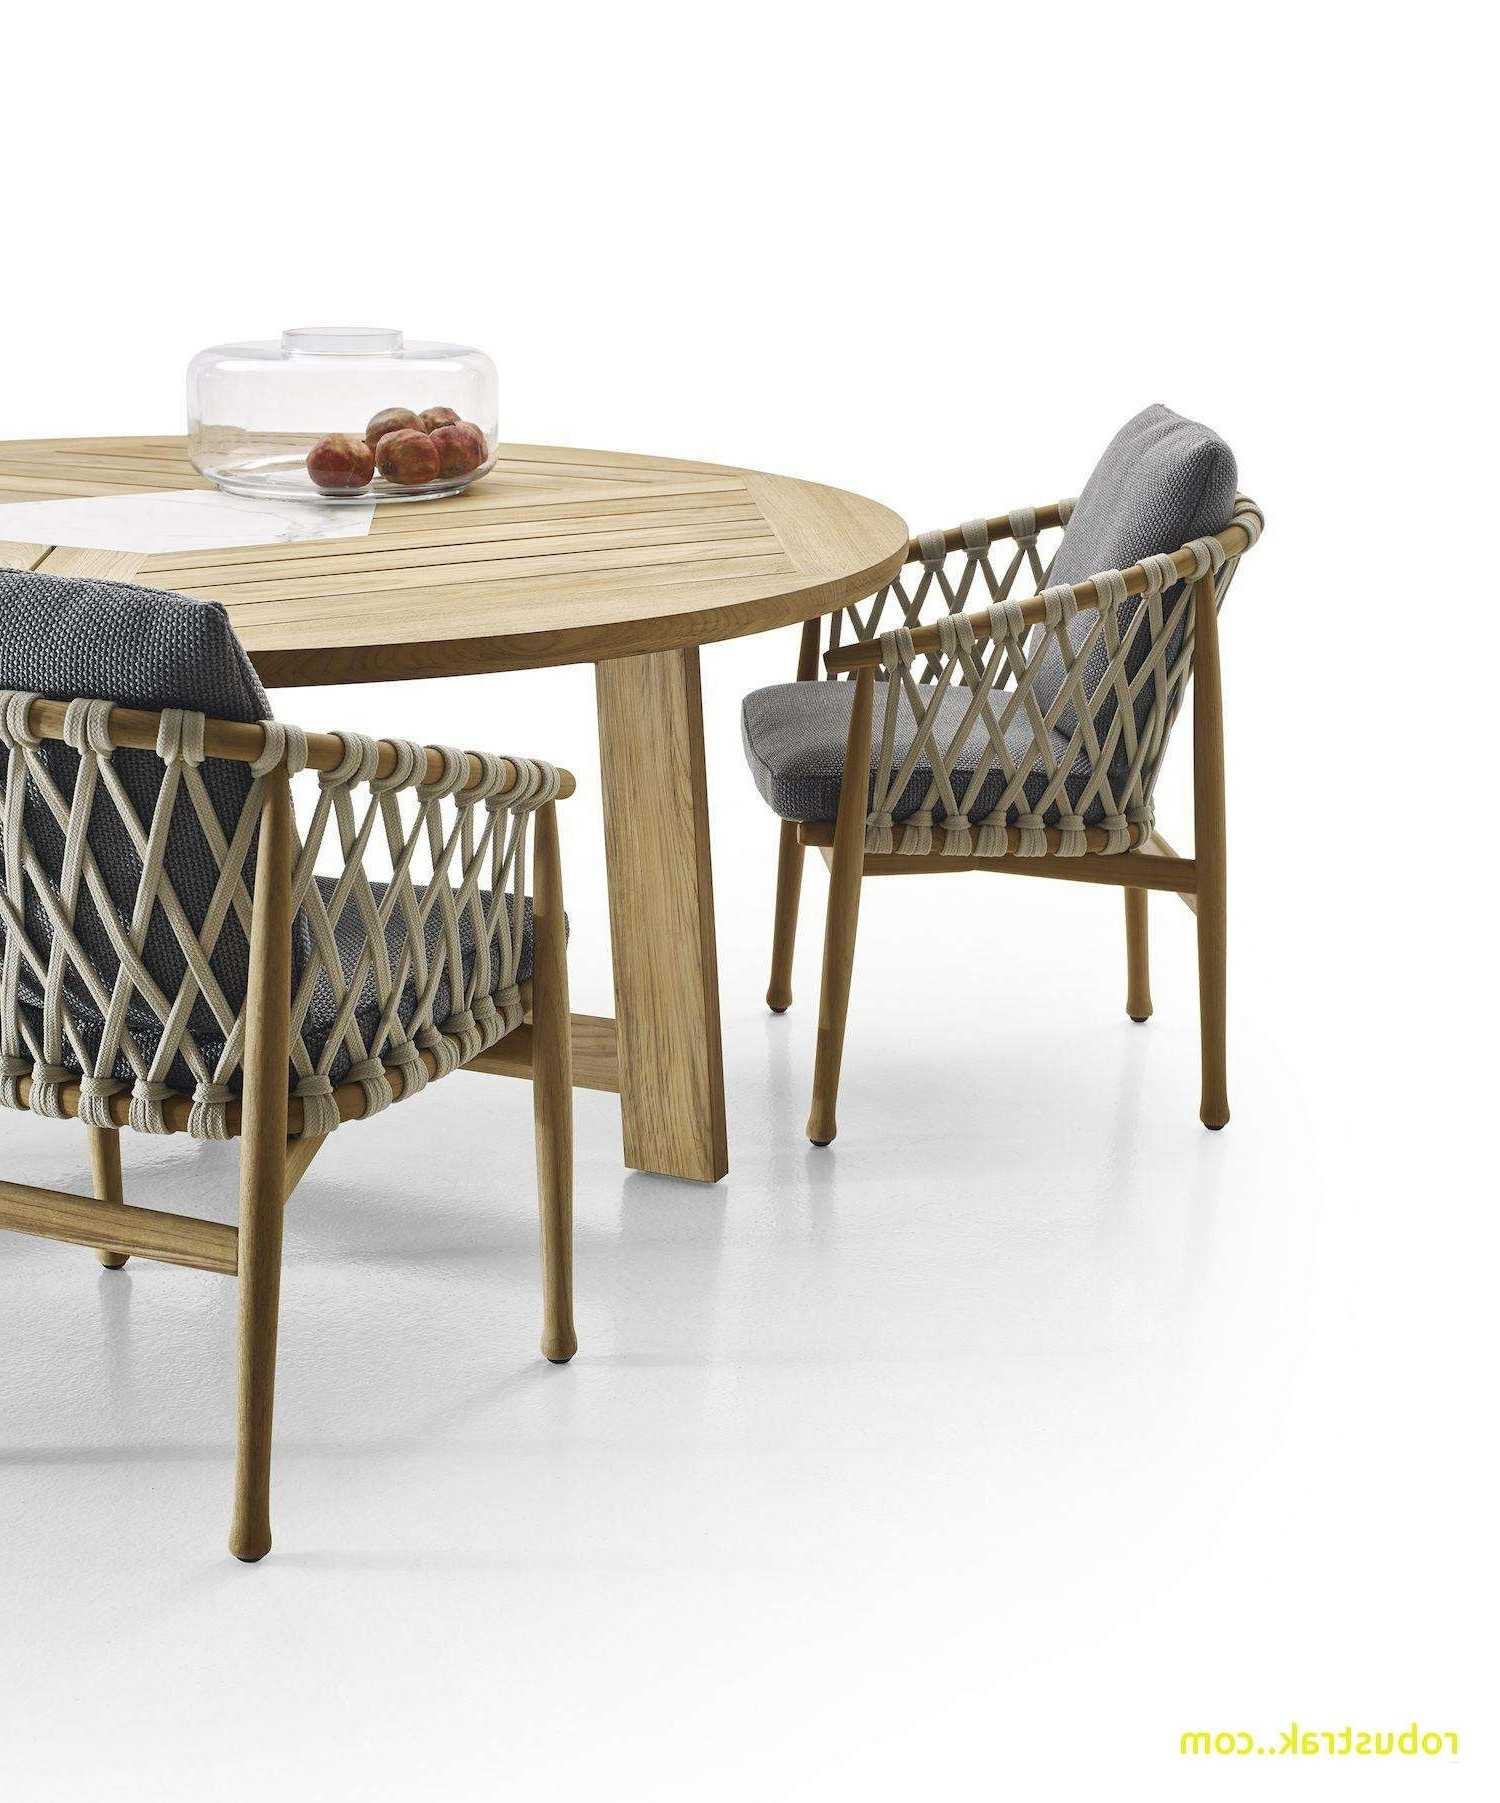 Caira Extension Pedestal Dining Tables Throughout Fashionable The 21 New Pedestals For Dining Tables – Welovedandelion (View 4 of 25)